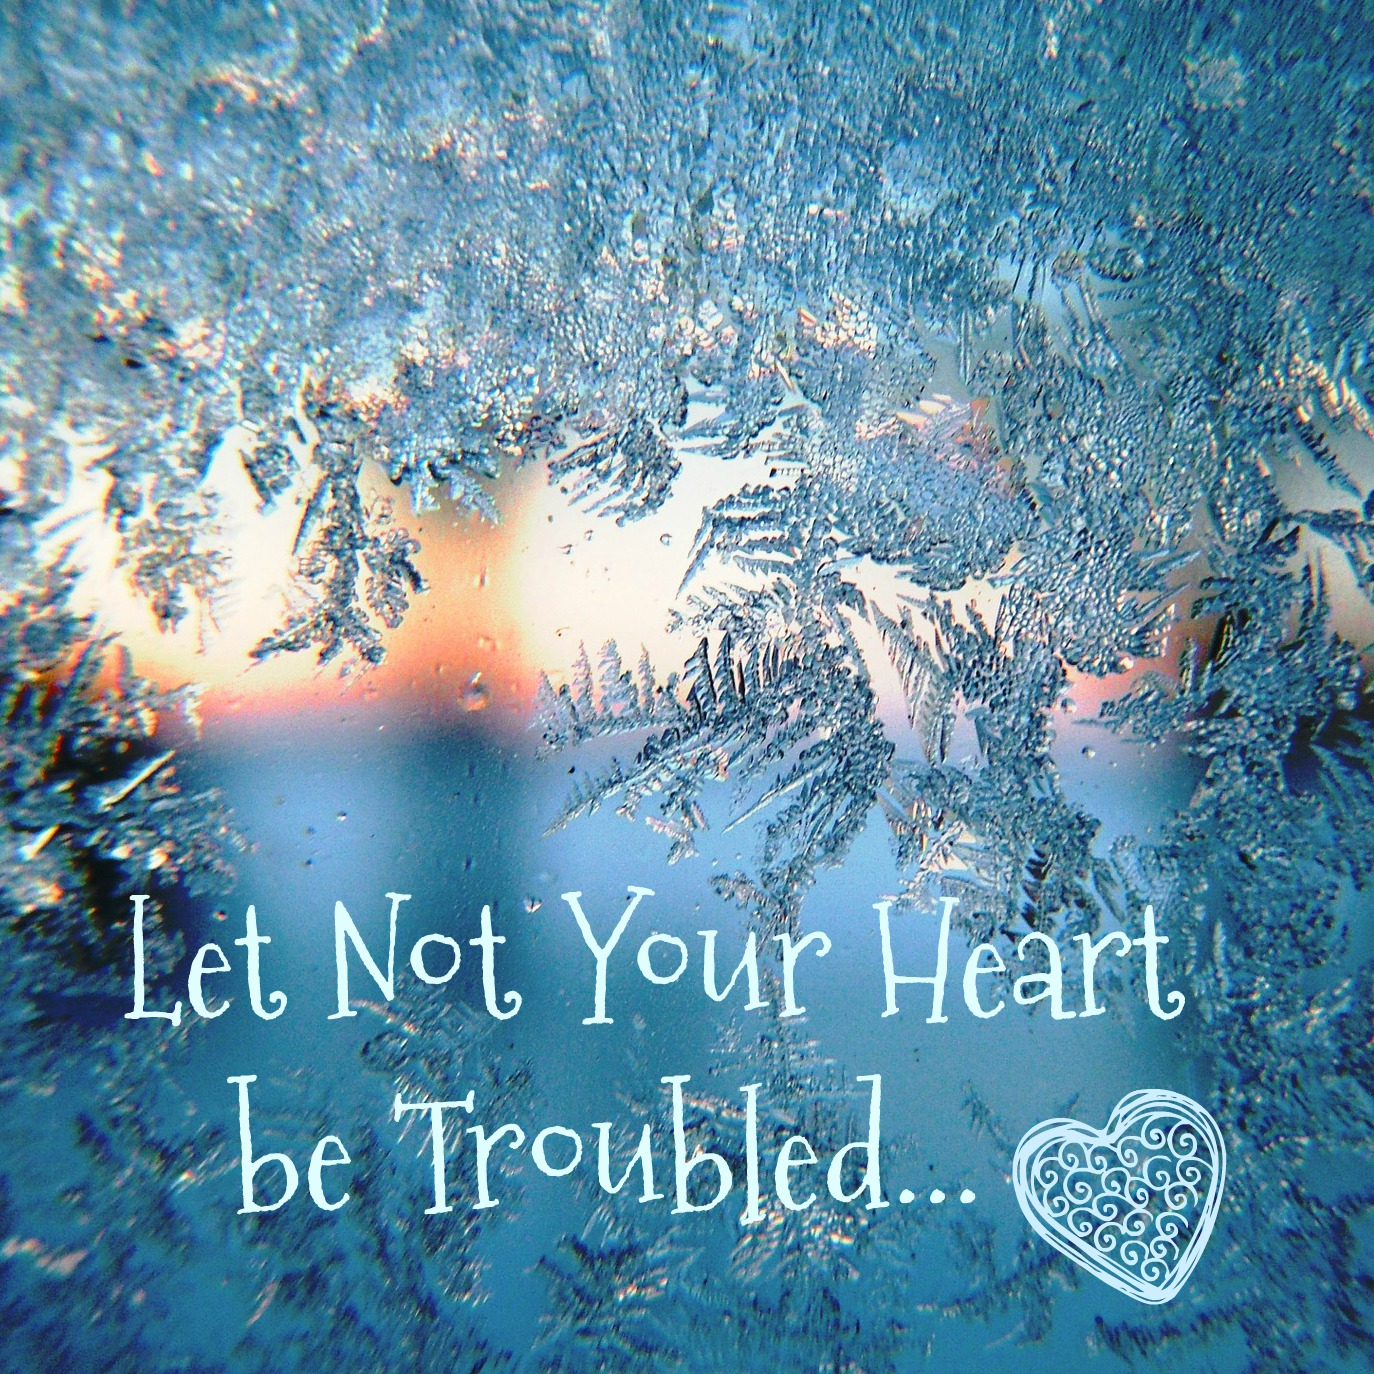 Let not your heart be troubled. John 14:1